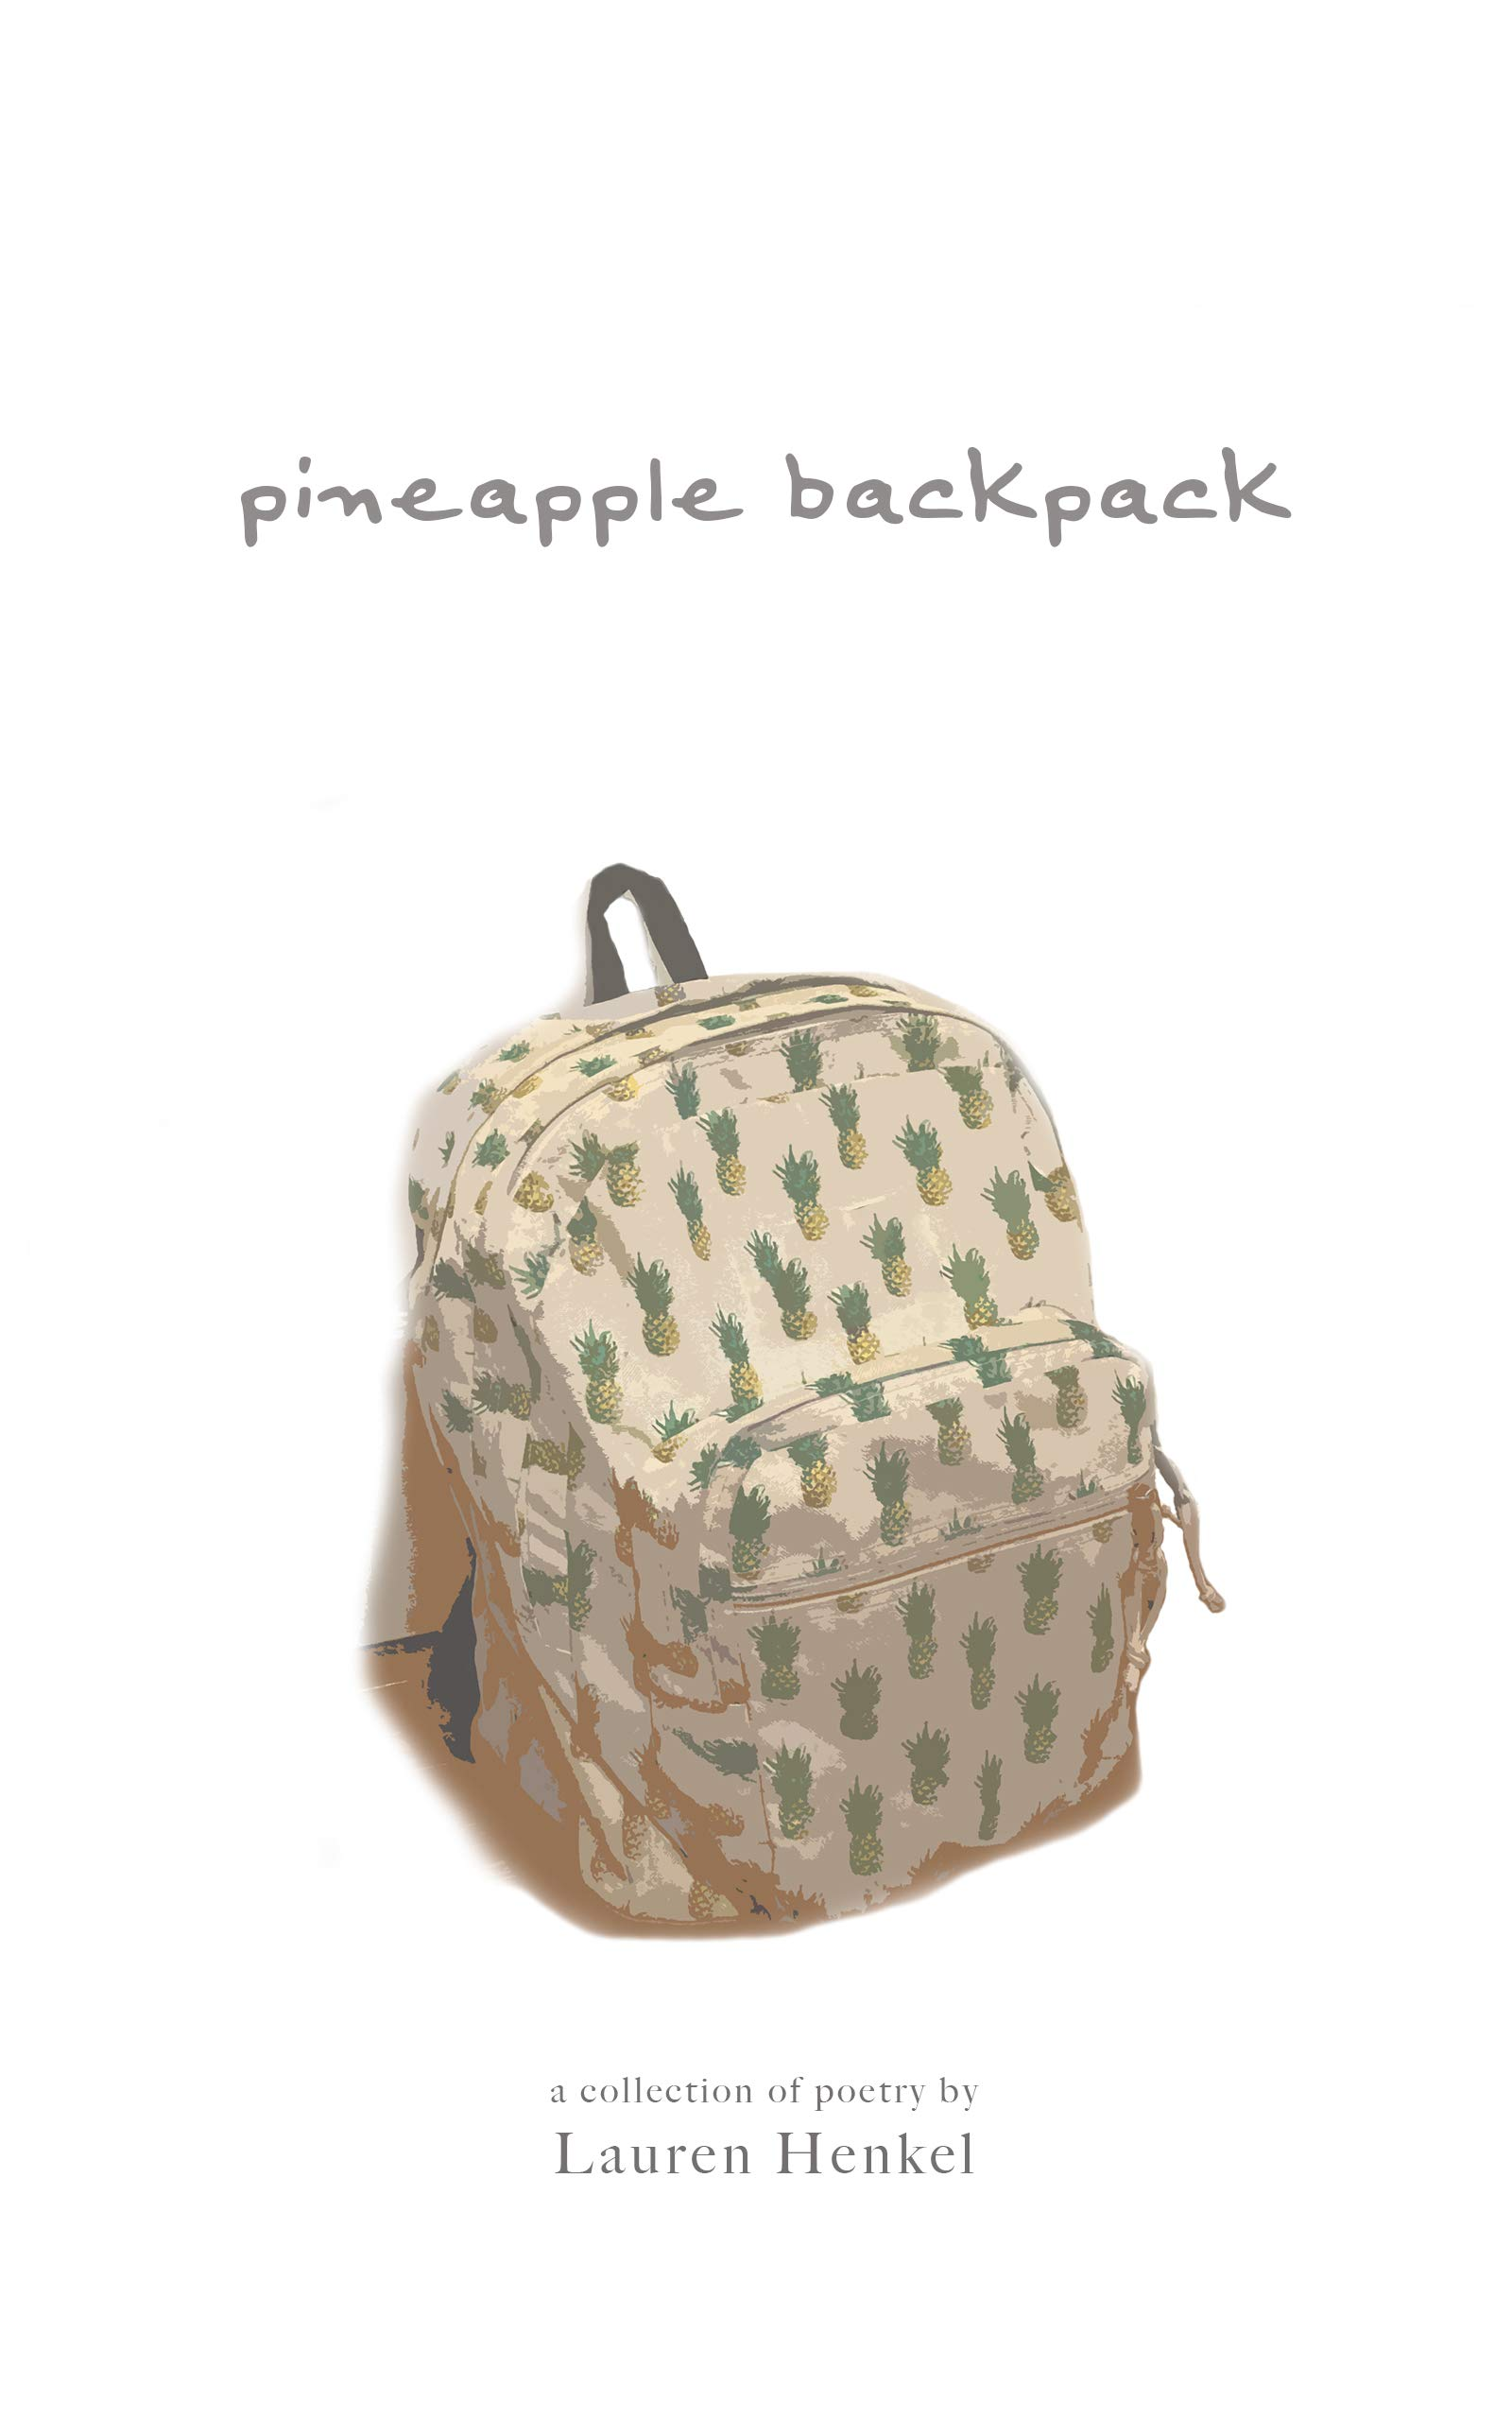 pineapple backpack: a poetry collection